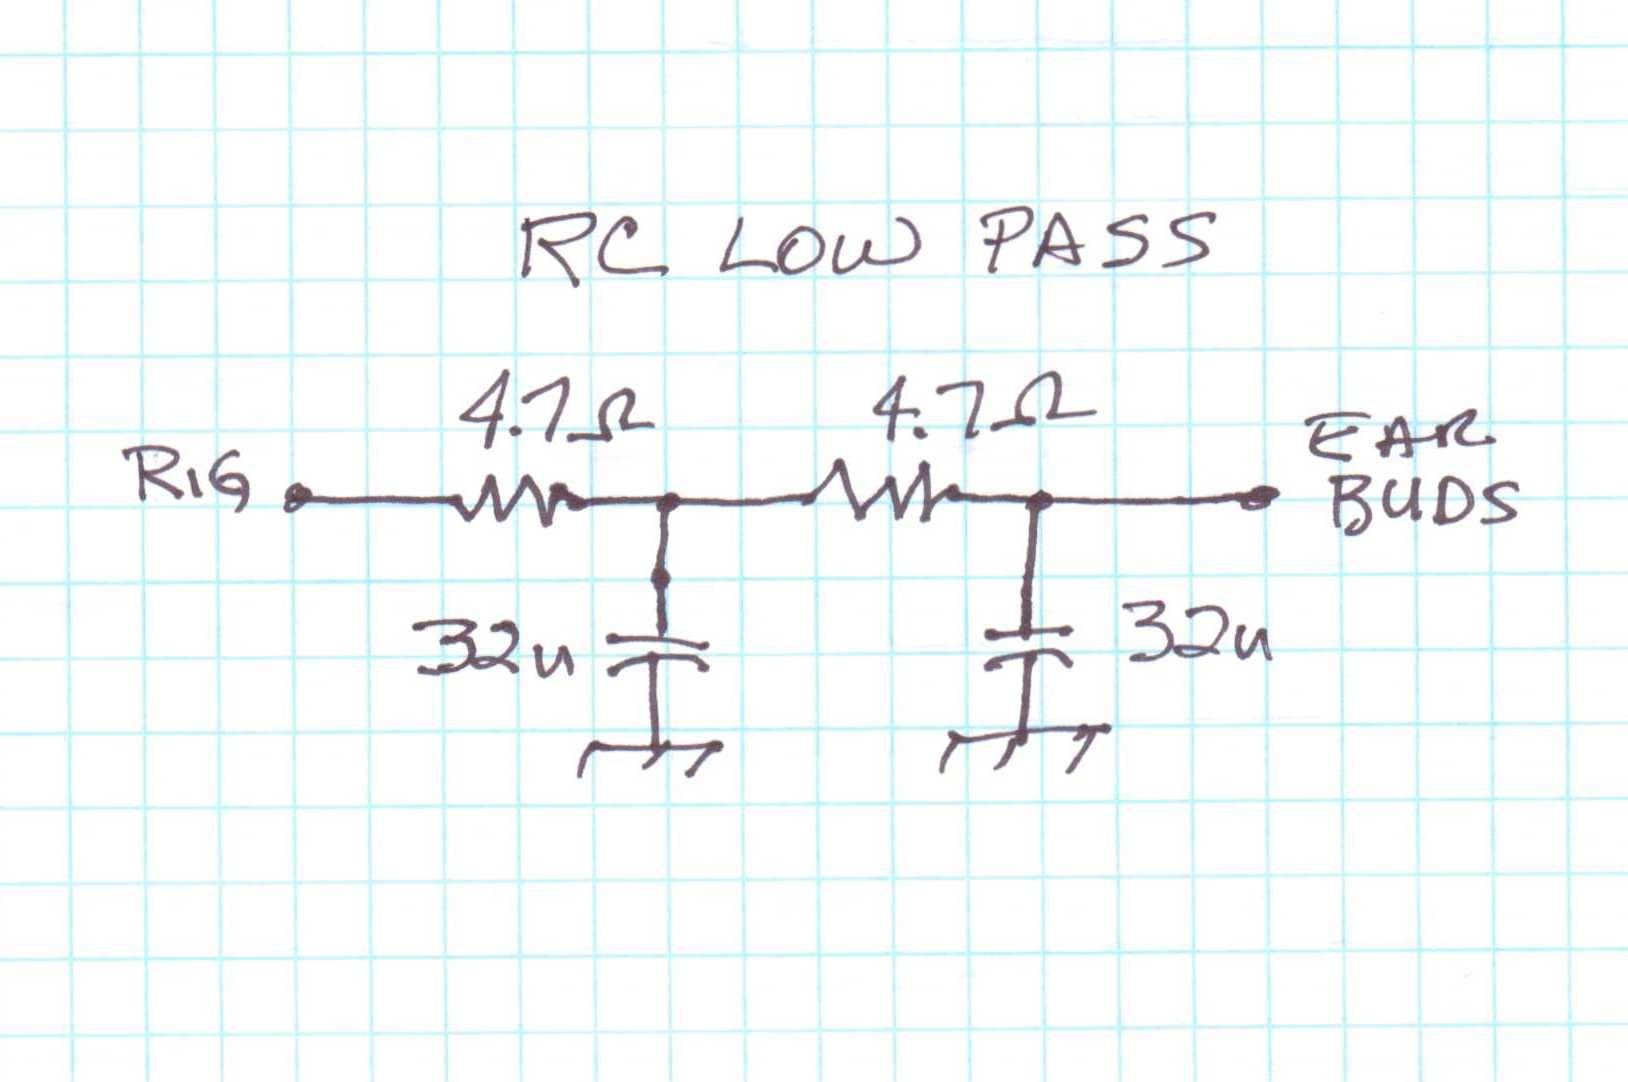 Rc low pass filter calculator.